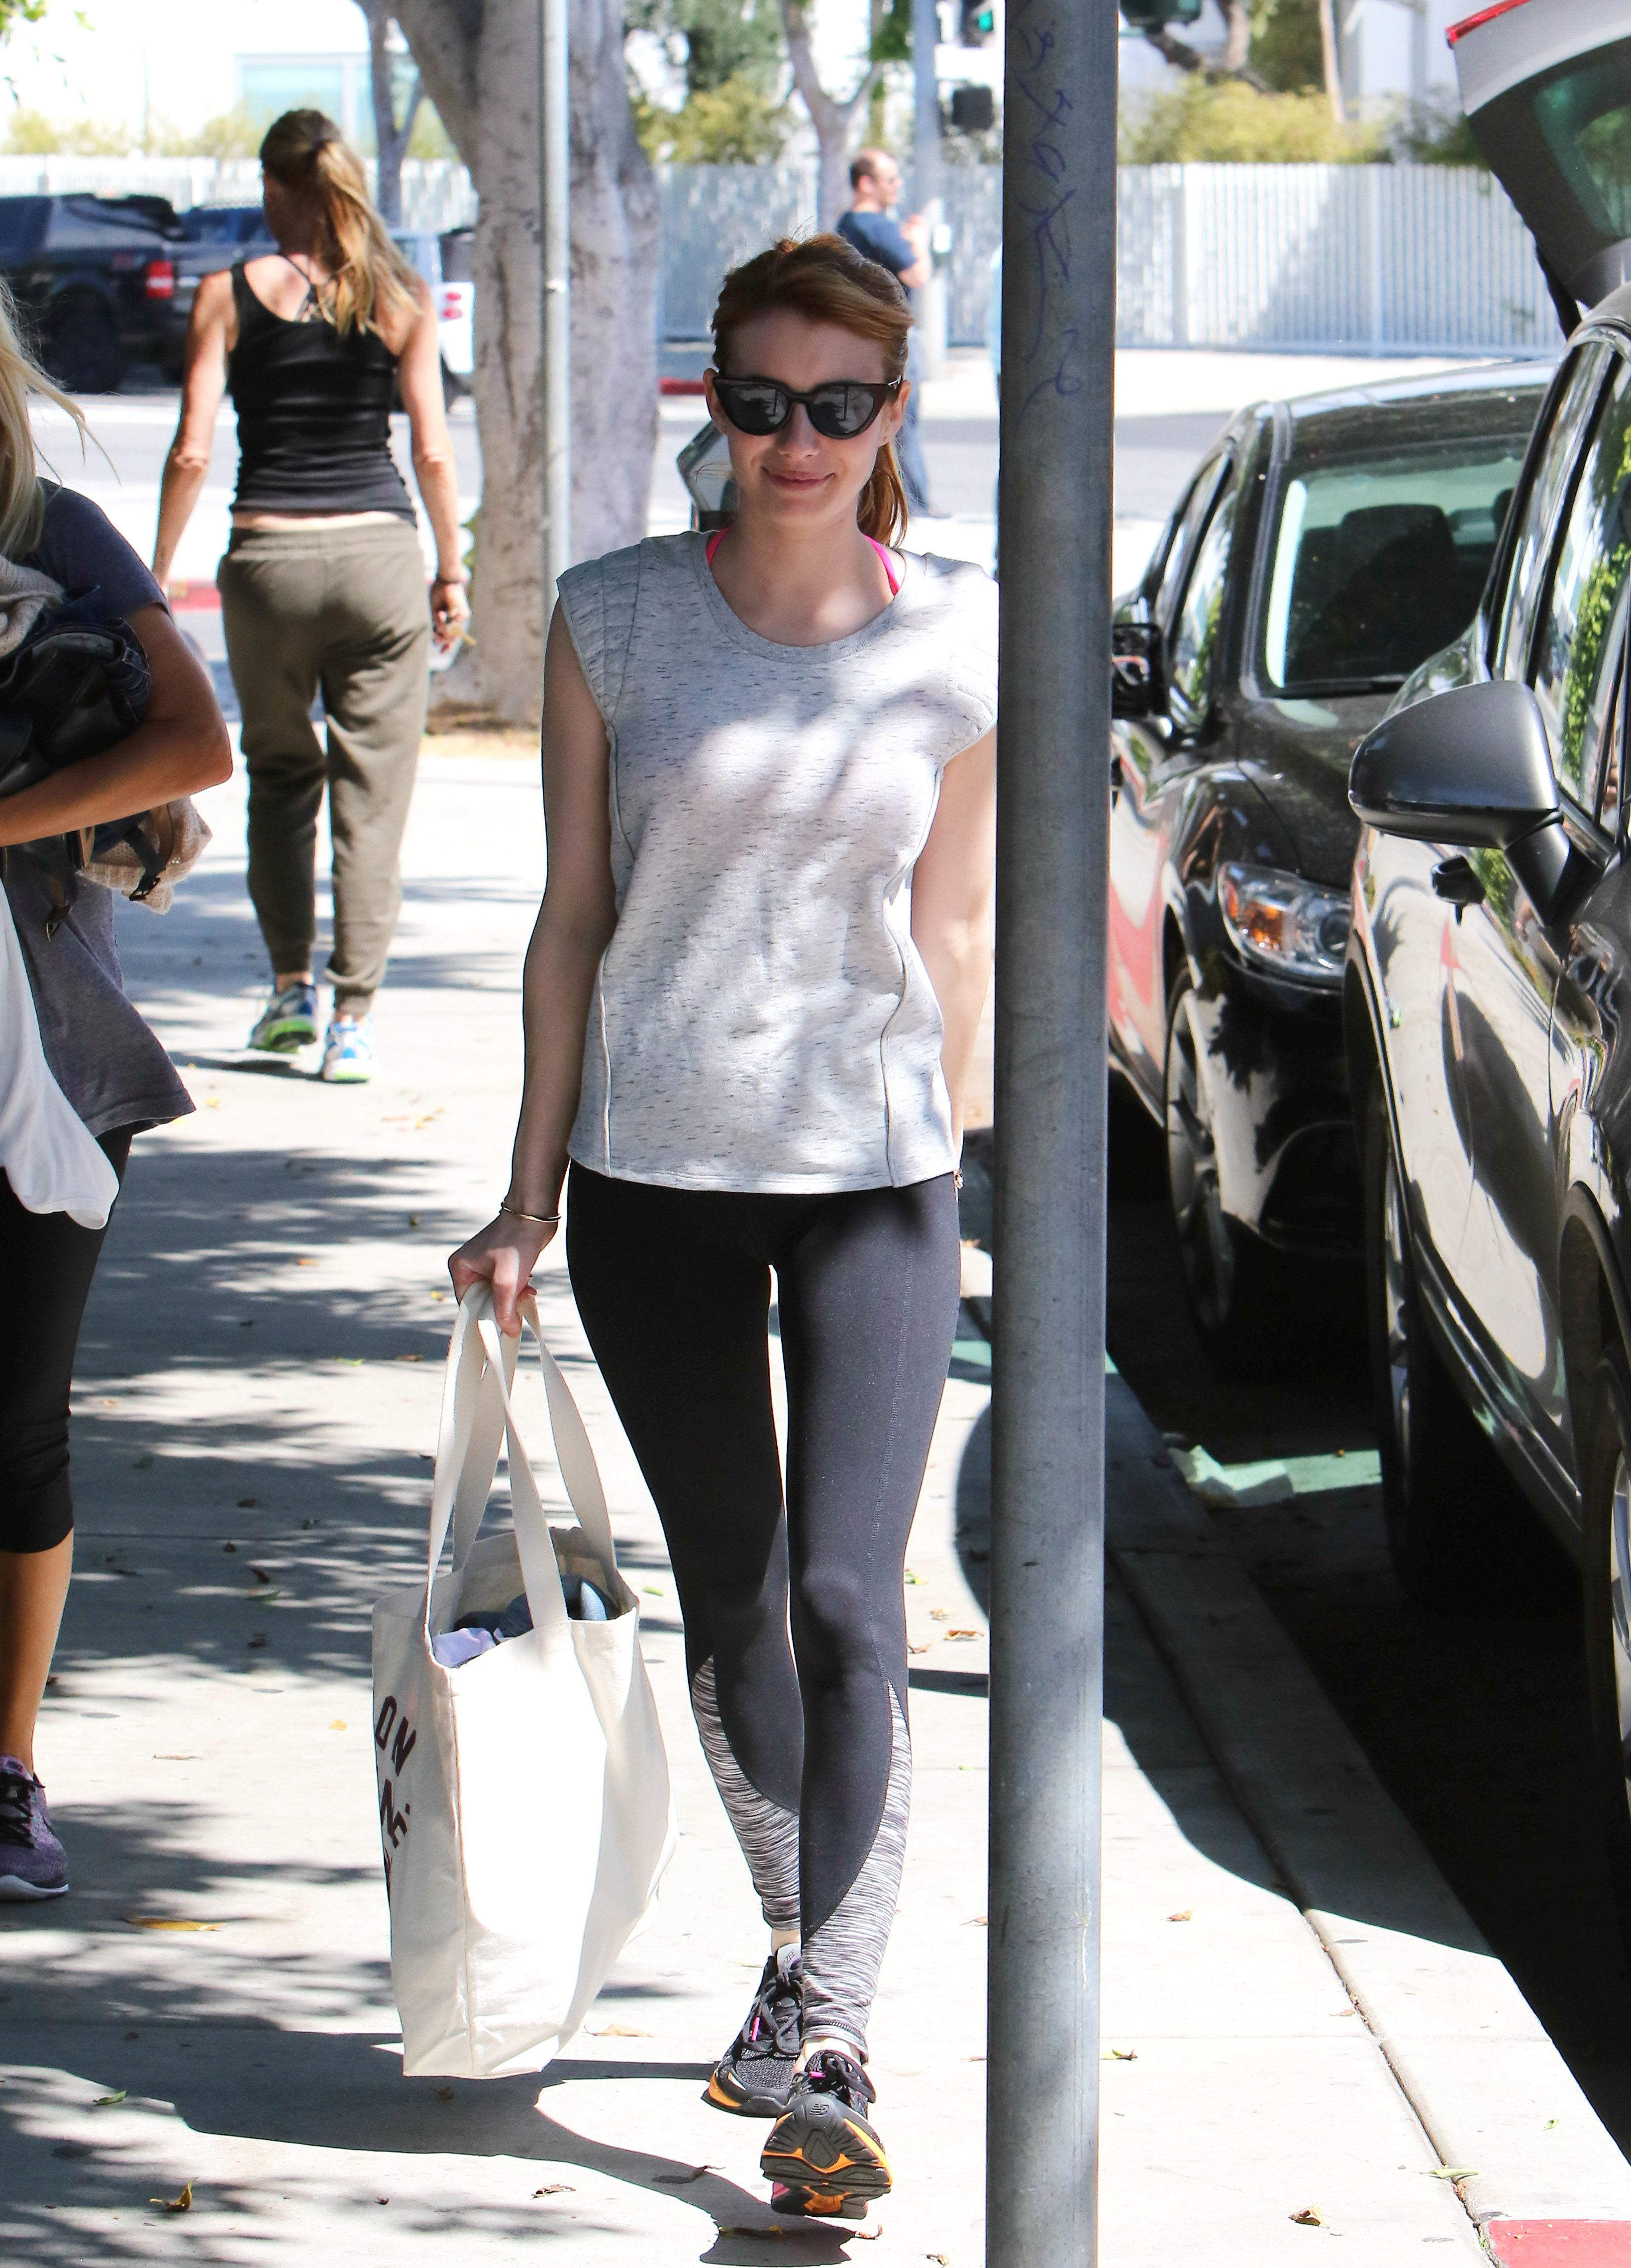 Emma Roberts Leaving the Gym in LA, 04/05/16